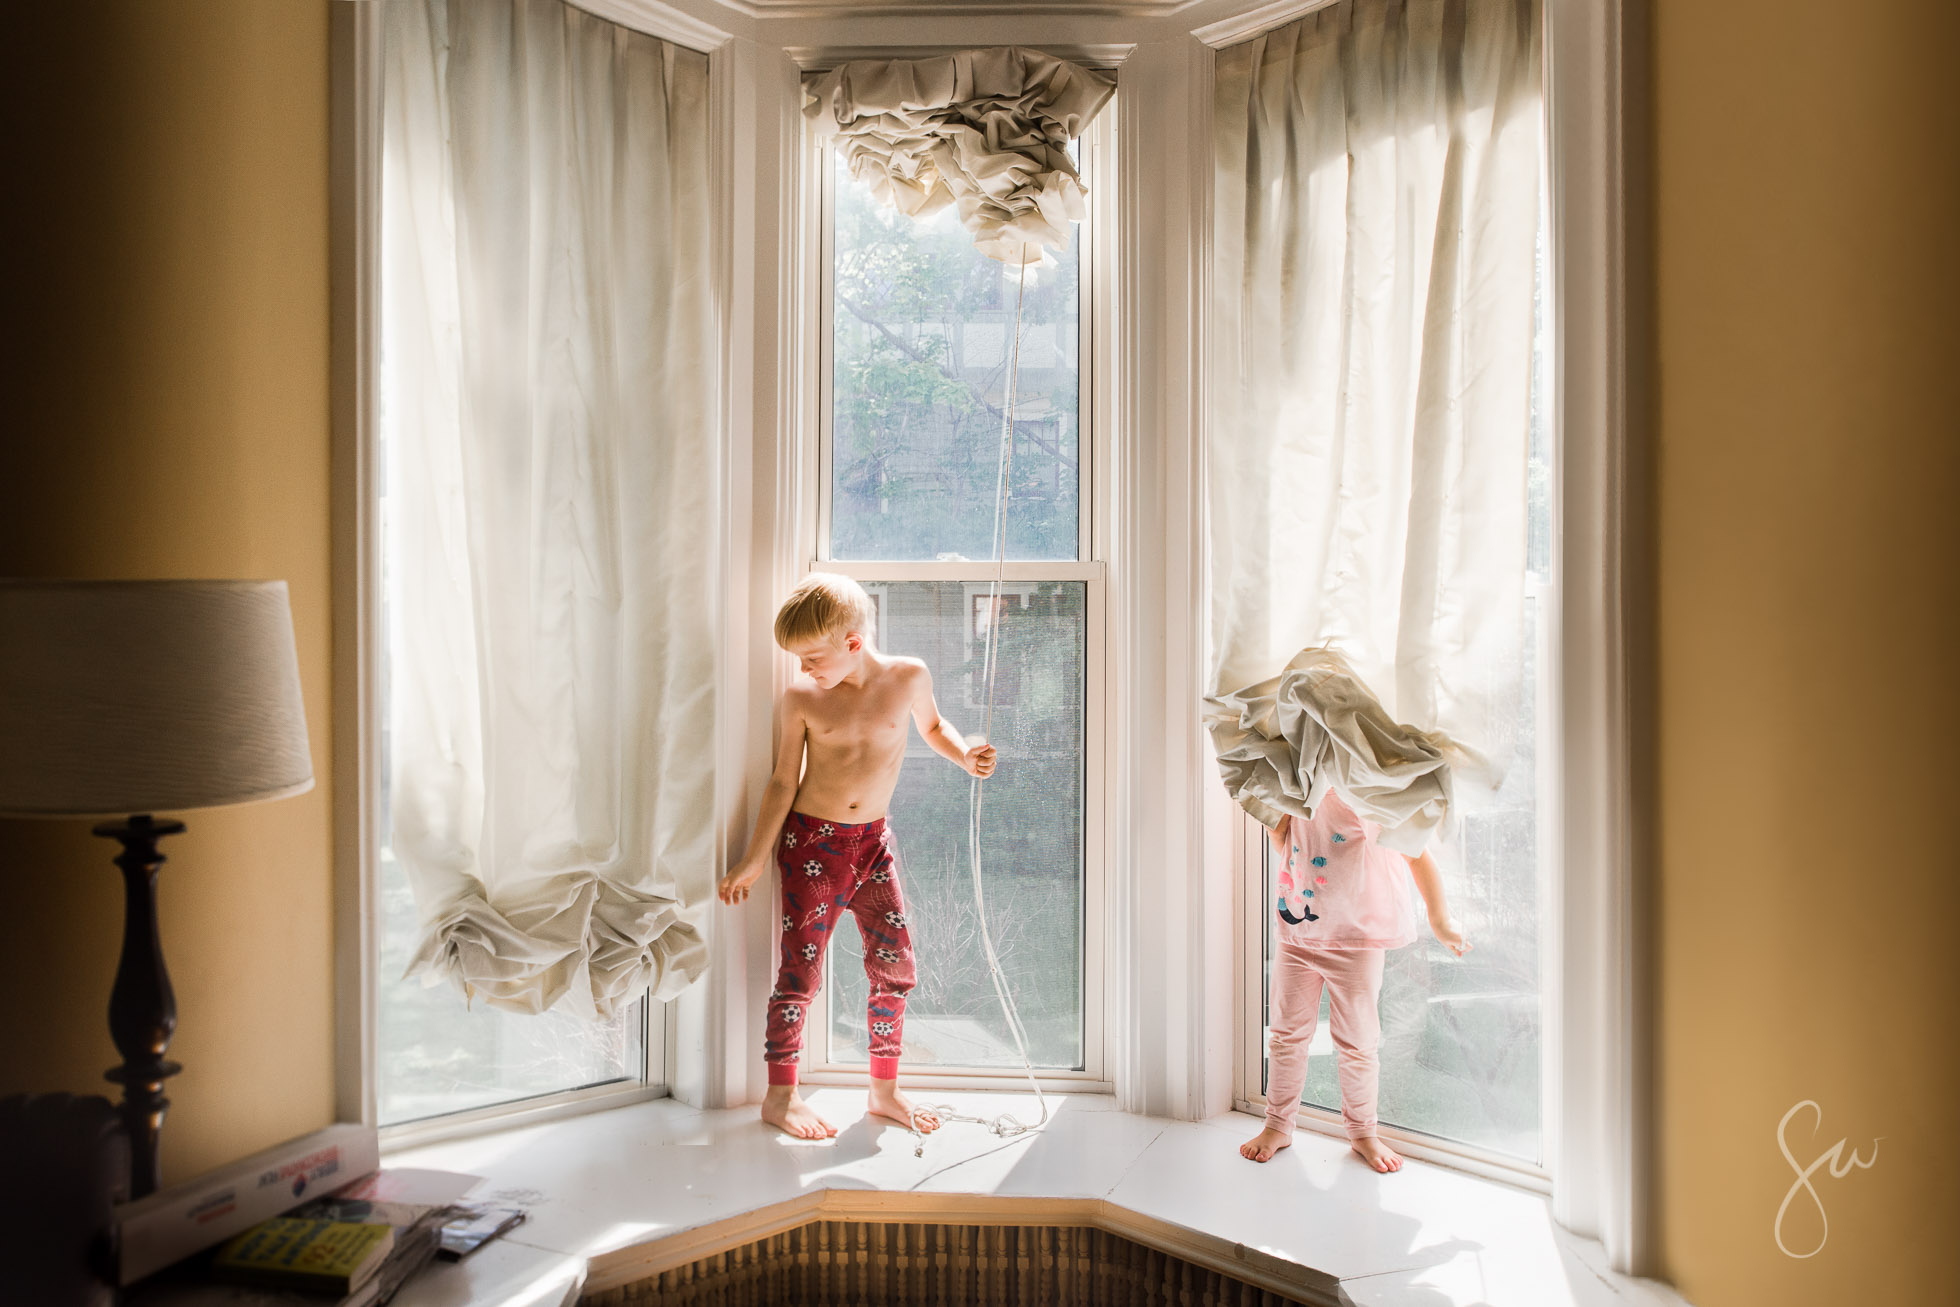 Everyday-Life-Photo-of-Children-Playing-in-Clean-Glow-of-Beautiful-Natural-Window-Light-by-Sarah-Wilkerson-